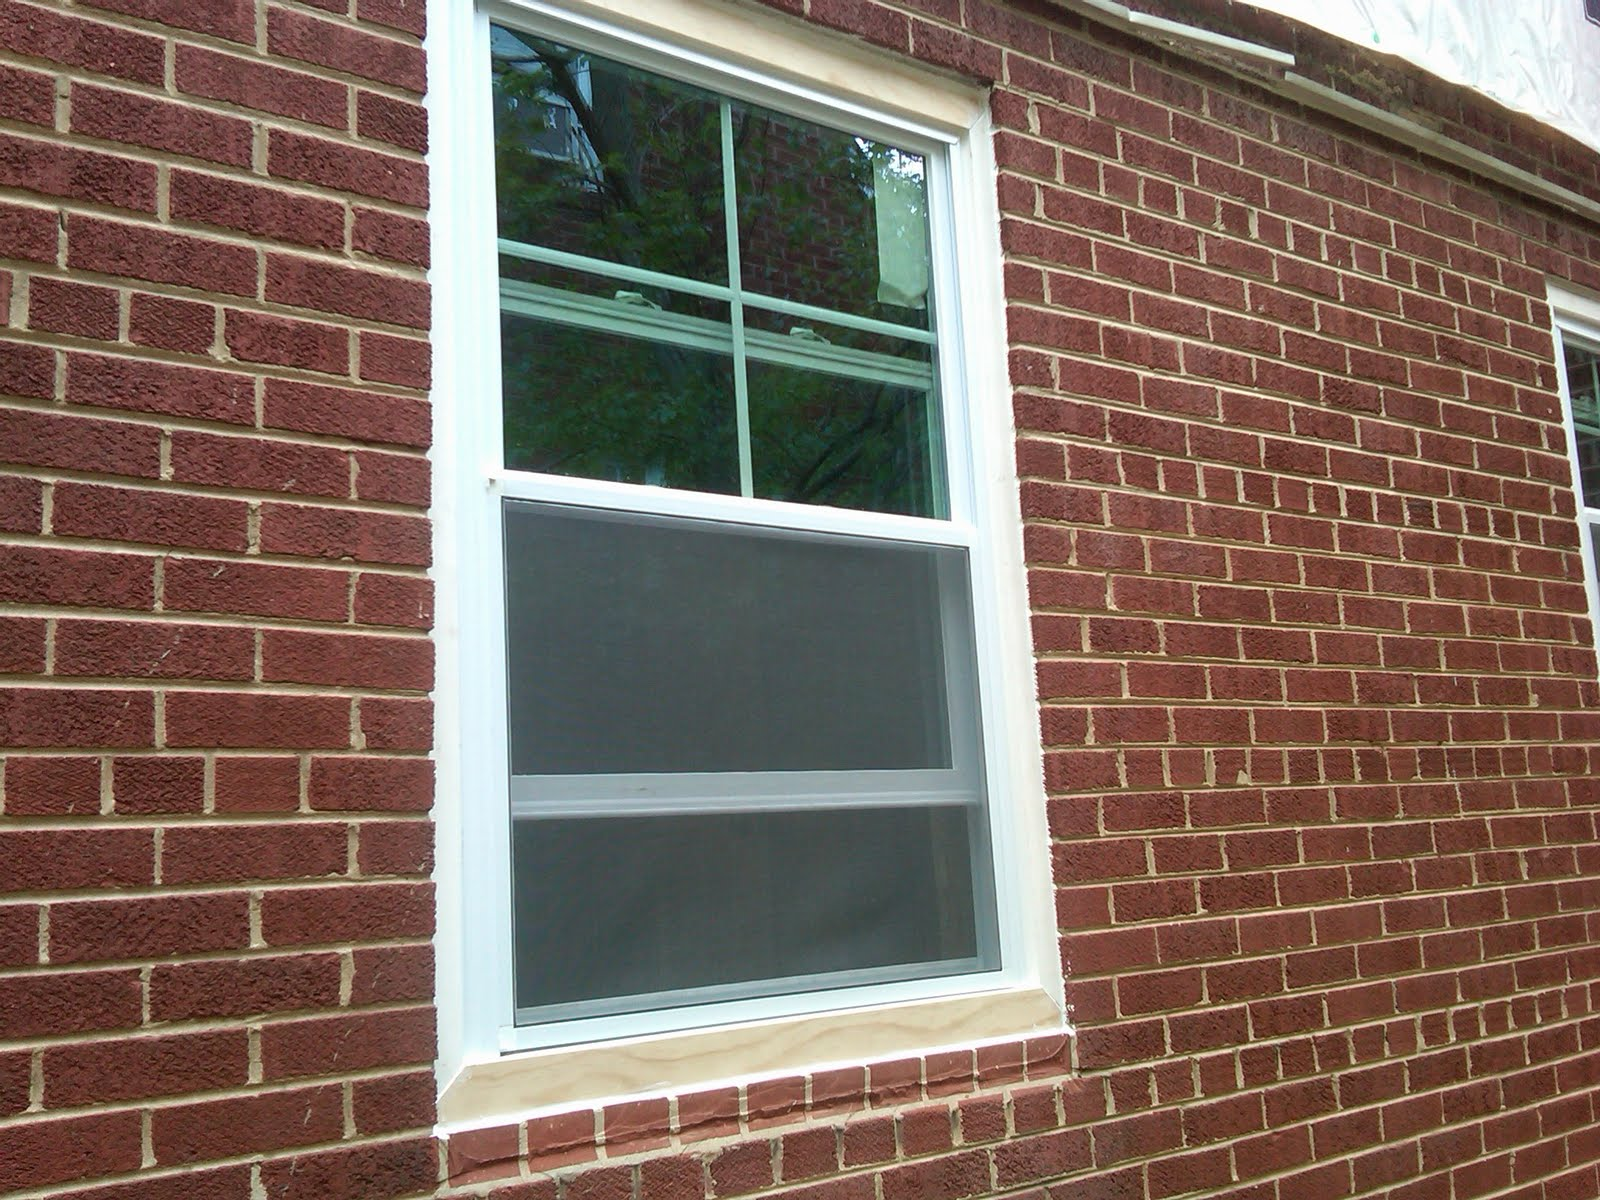 Sill ideas exterior joy studio design gallery best design How to replace an exterior window